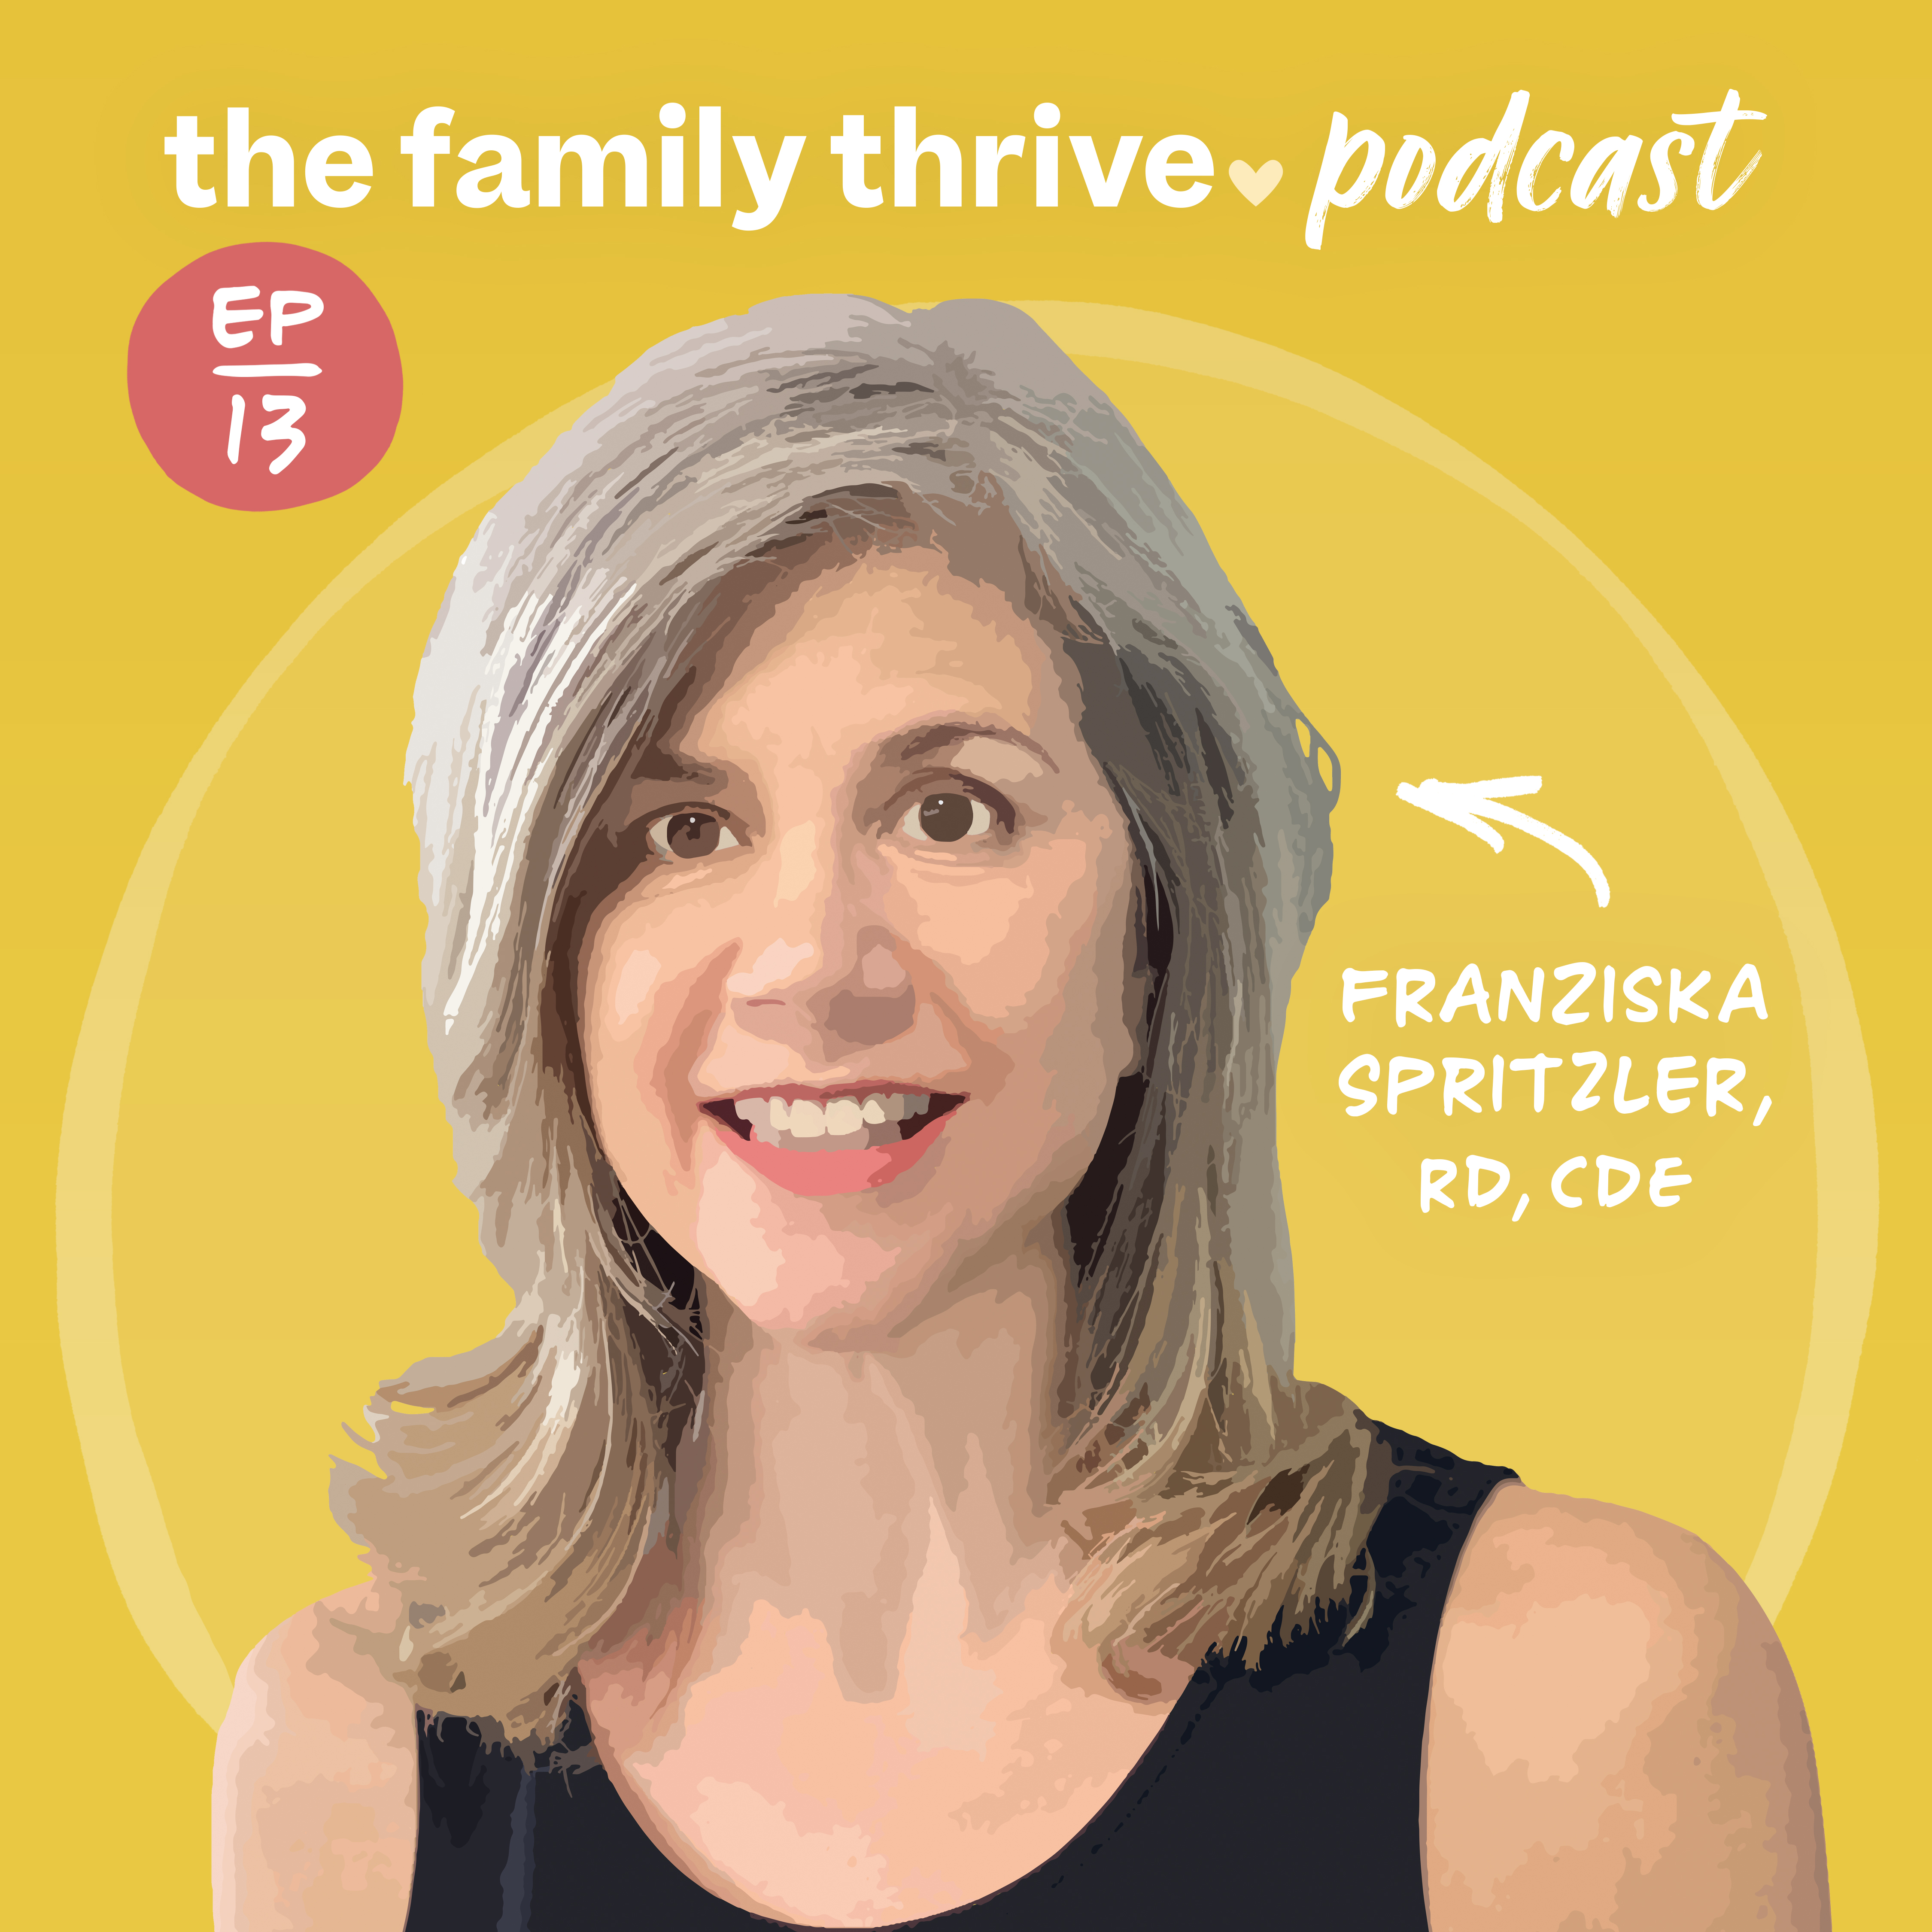 Podcast Ep. 13: What Every Parent Needs to Know About Carbs, Protein, and Fat With Franziska Spritzler, RD, CDE